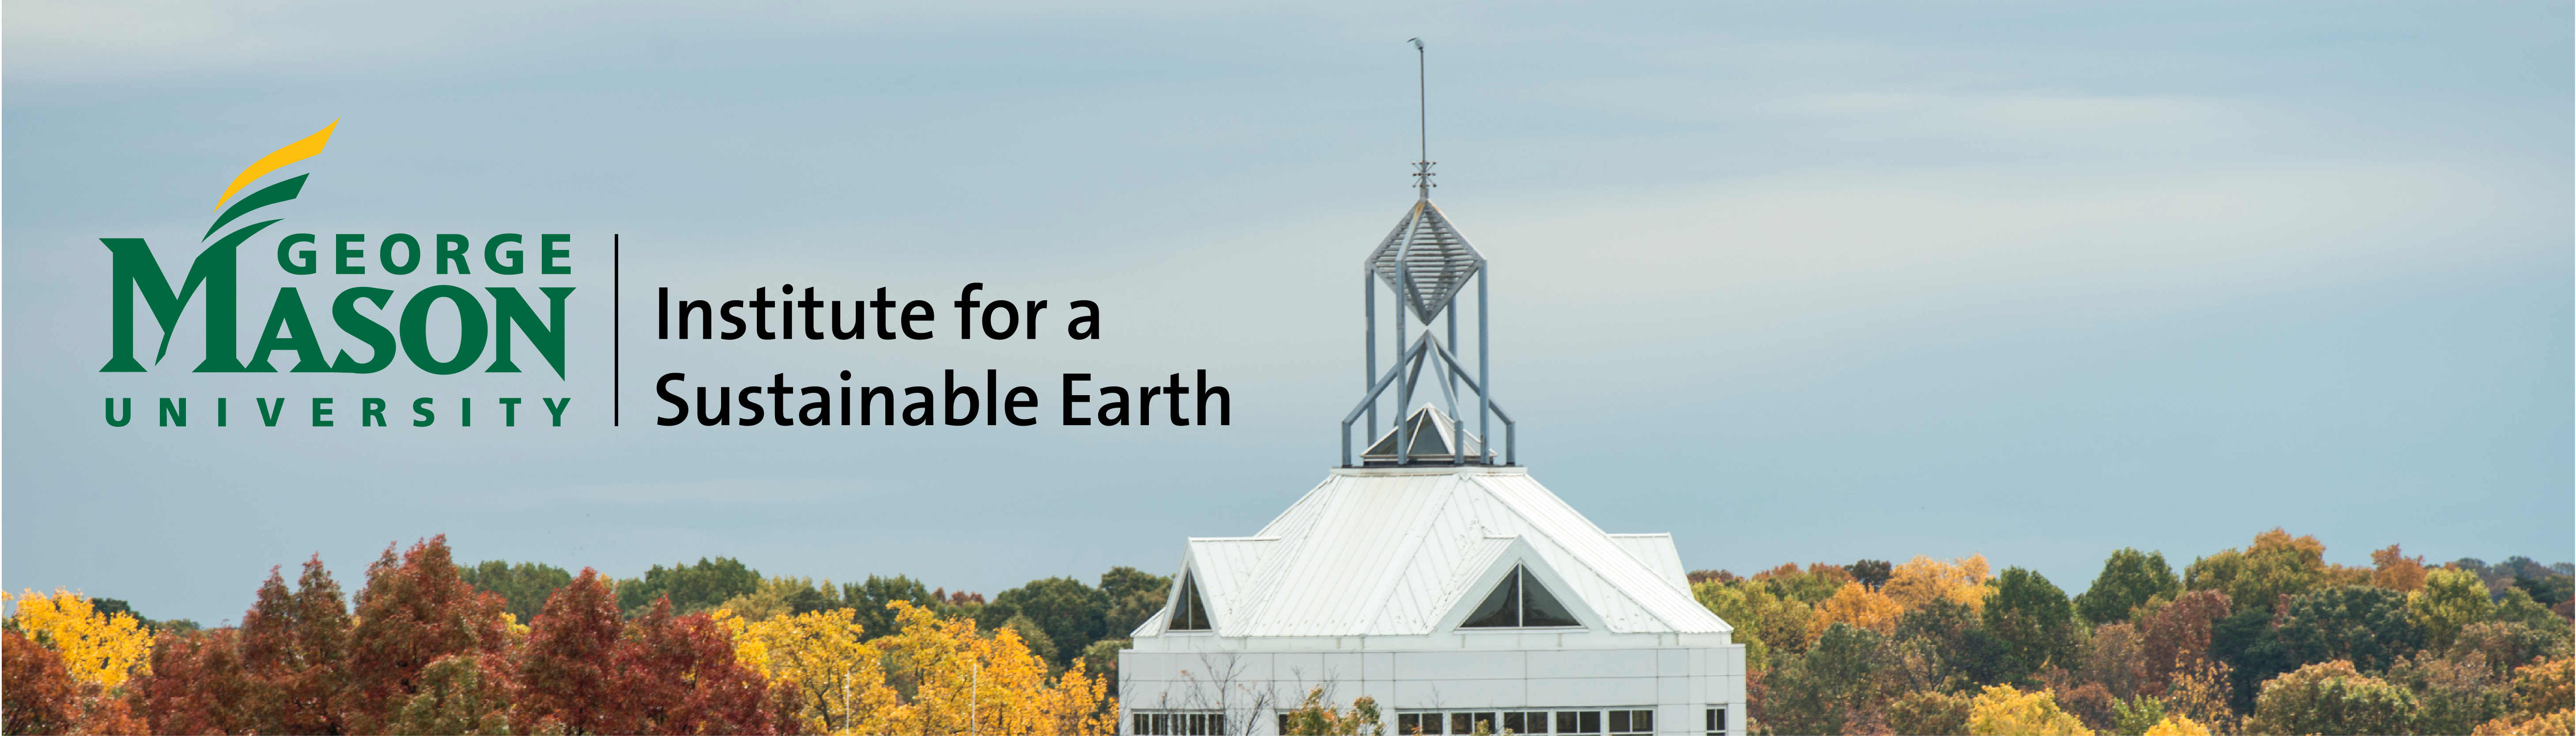 Institute for a Sustainable Earth